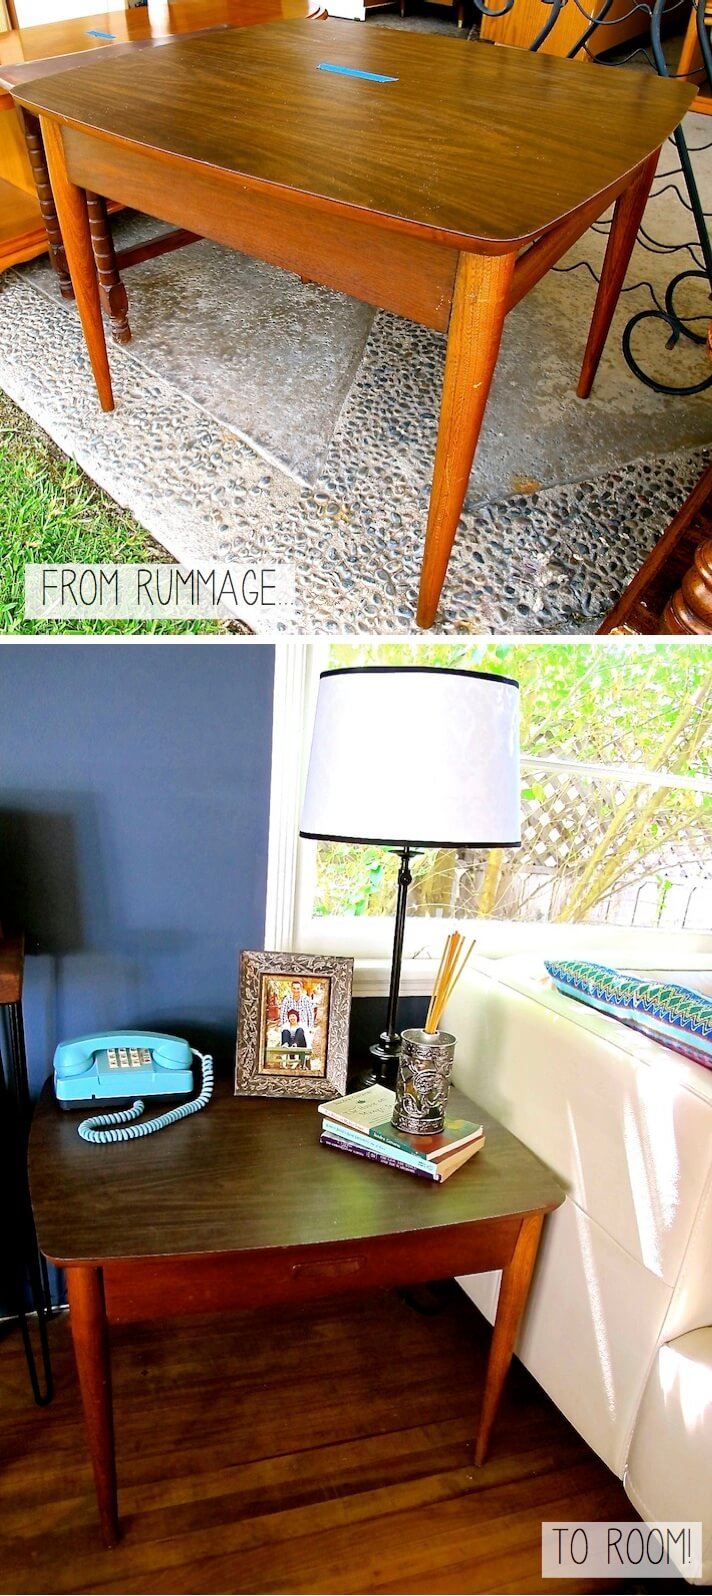 From Rummage to Room